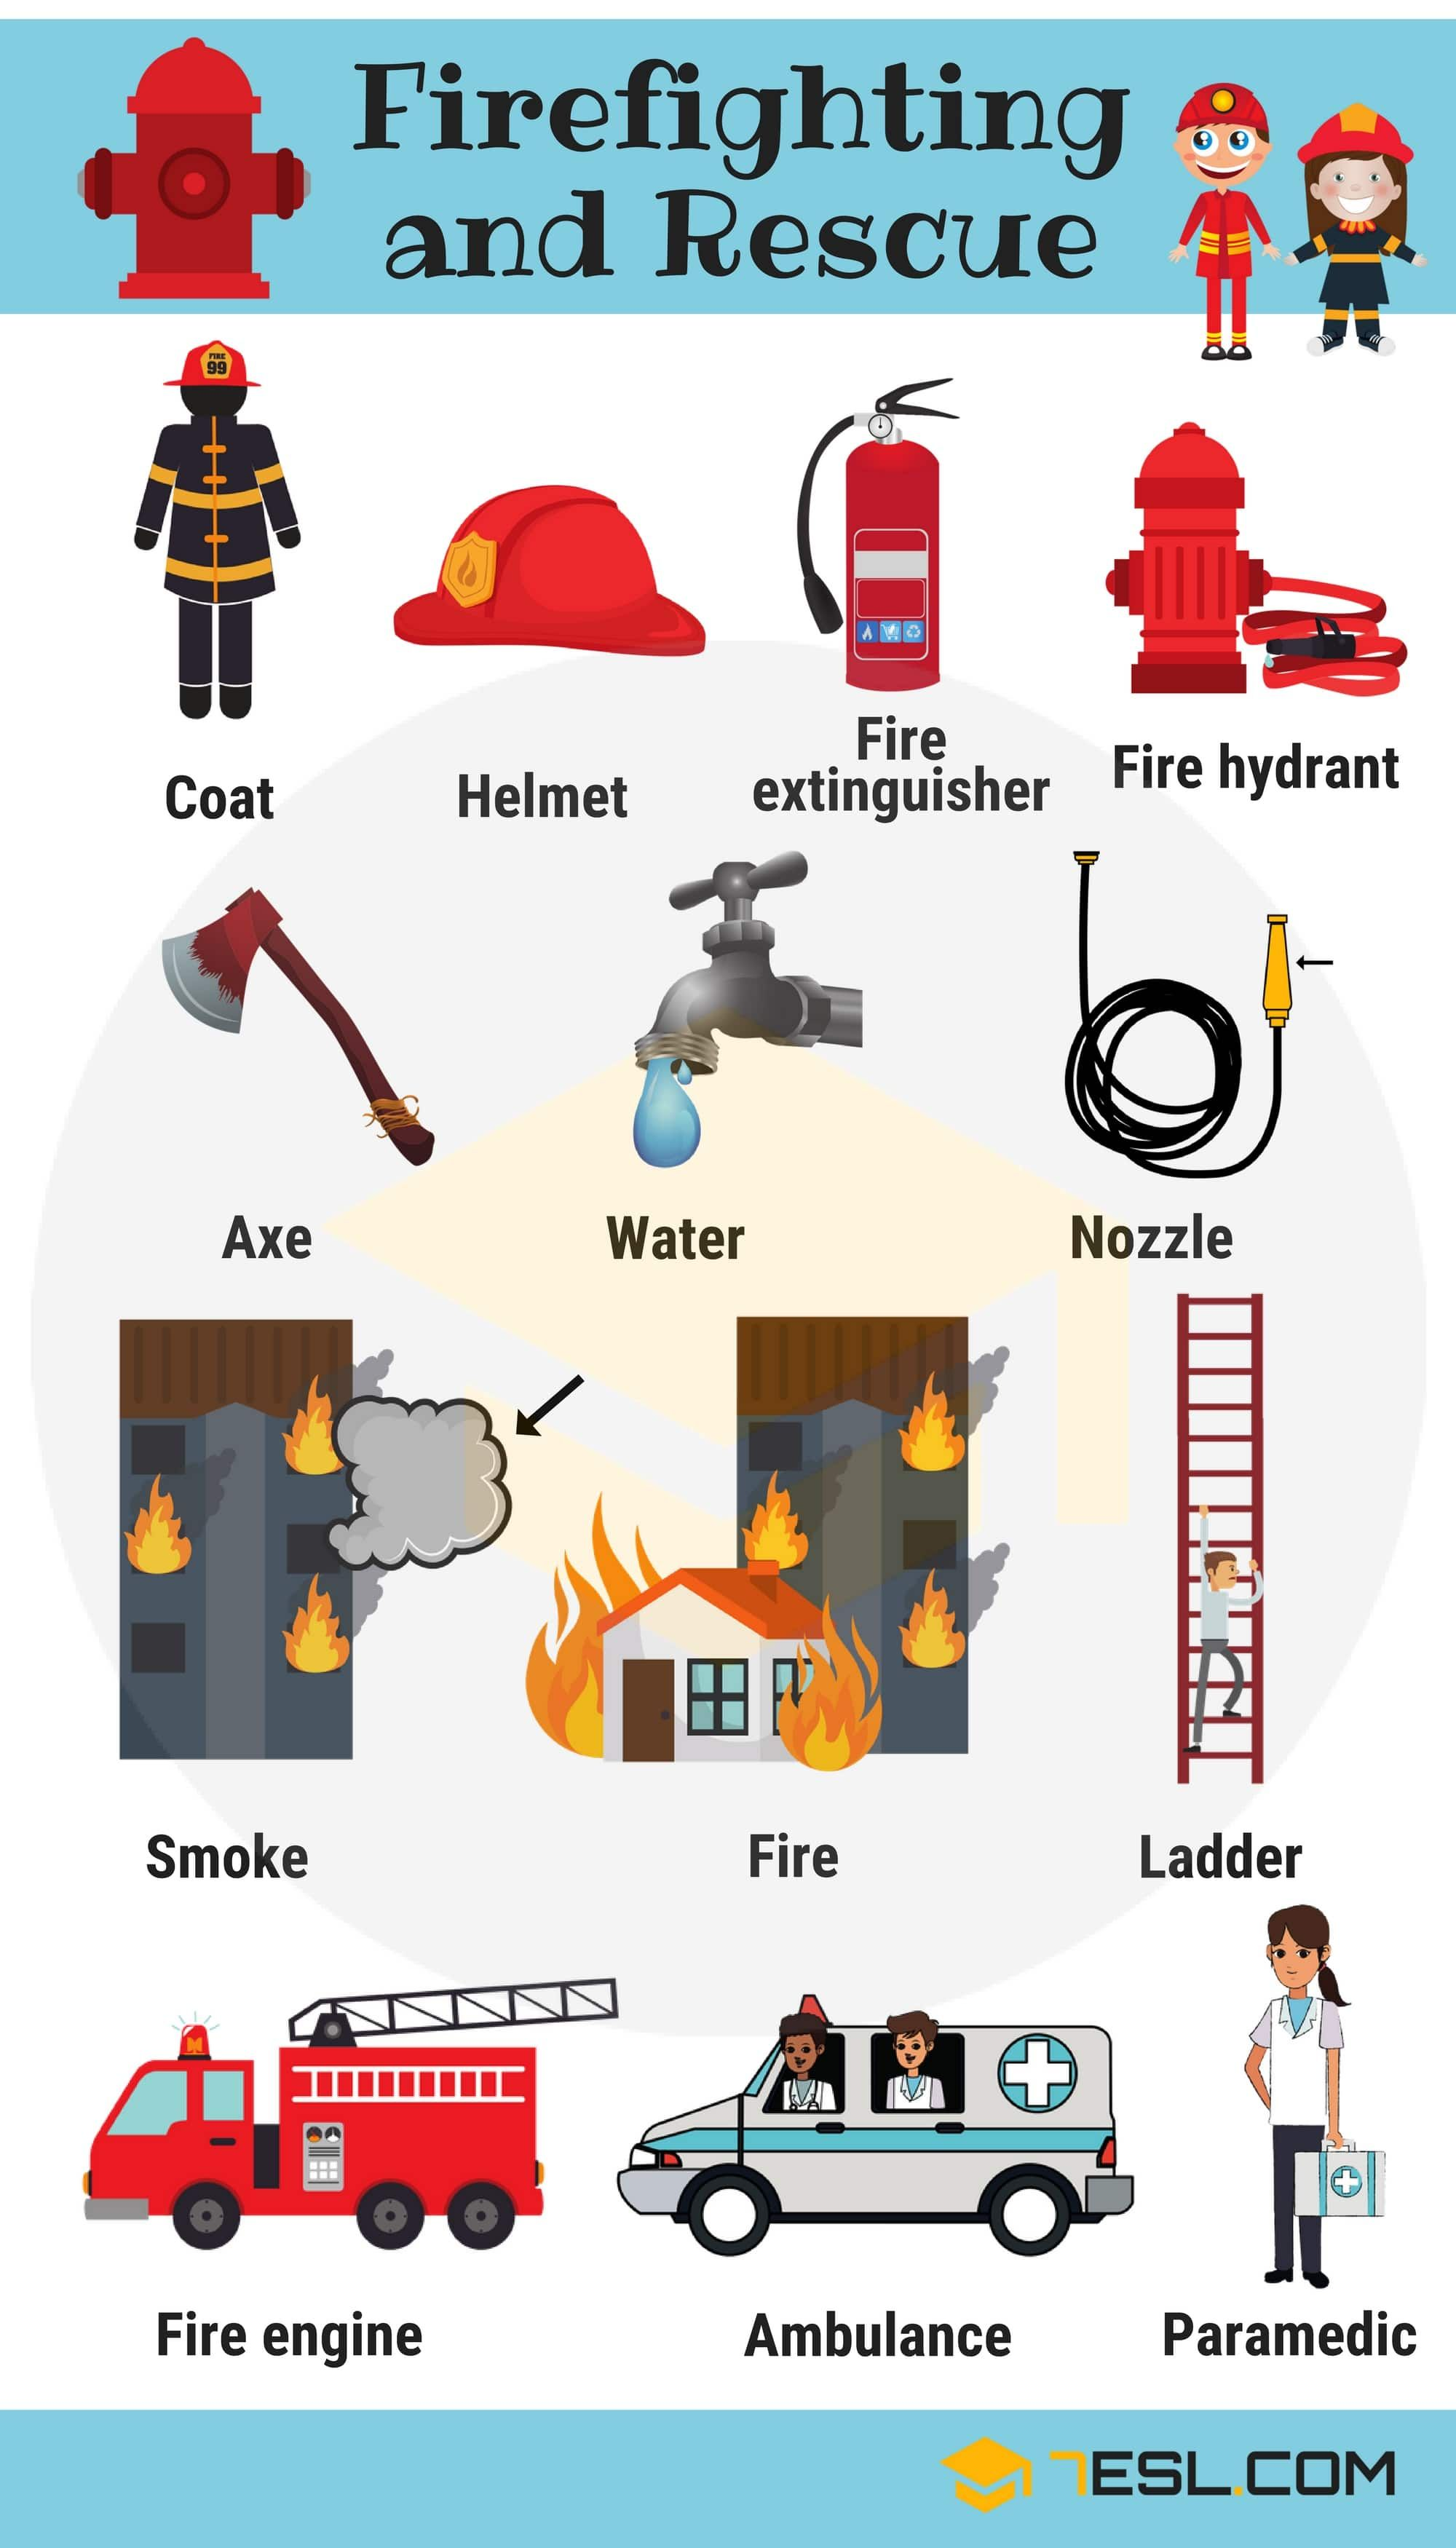 Firefighter Tools Firefighting And Rescue Vocabulary